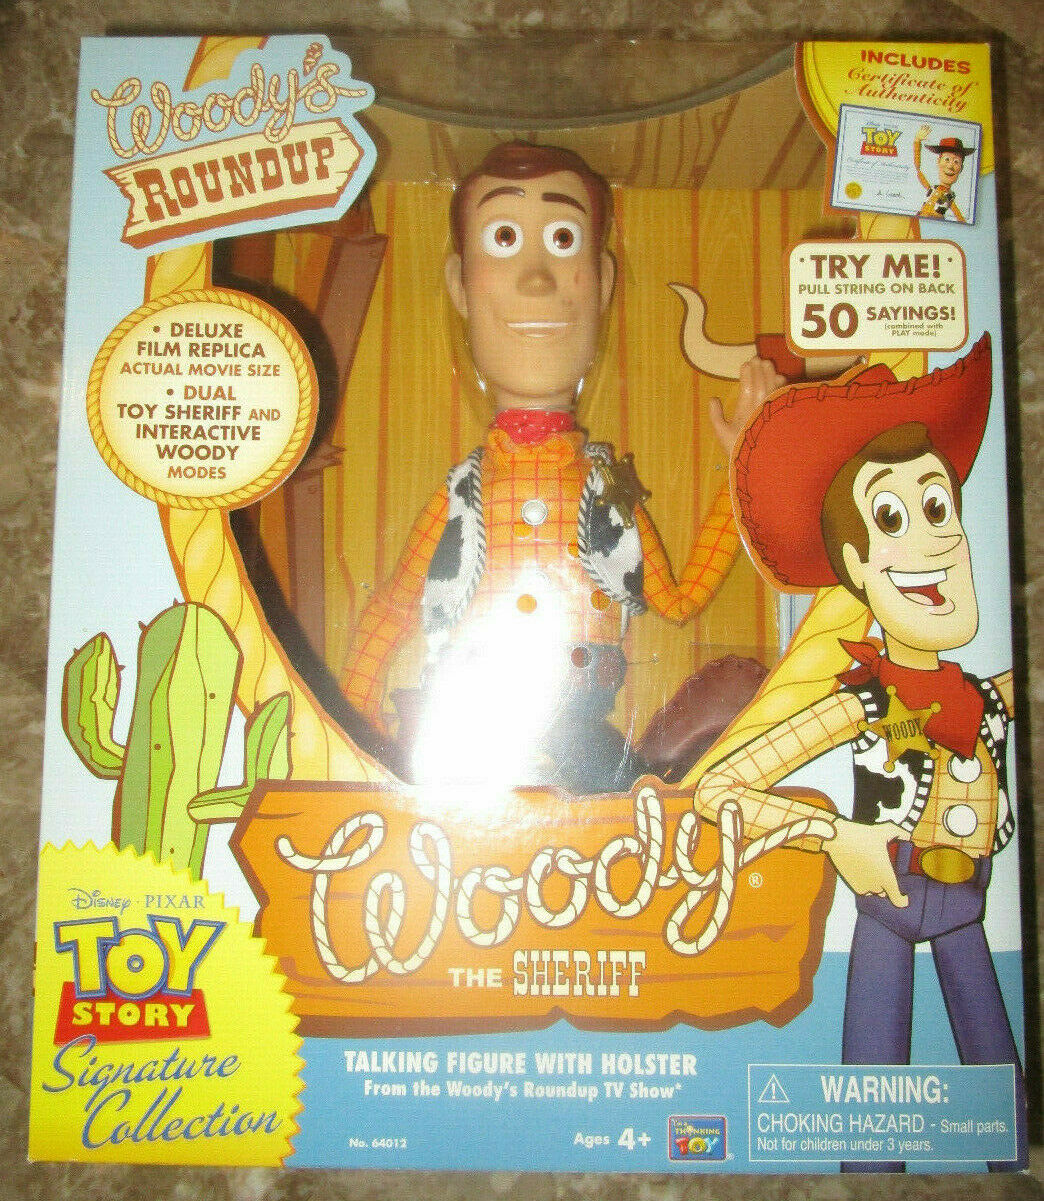 TOY STORY SIGNATURE COLLECTION WOODY WOODY WOODY THE SHERIF TALKING FIGURE WOODYS ROUNDUP 0b9